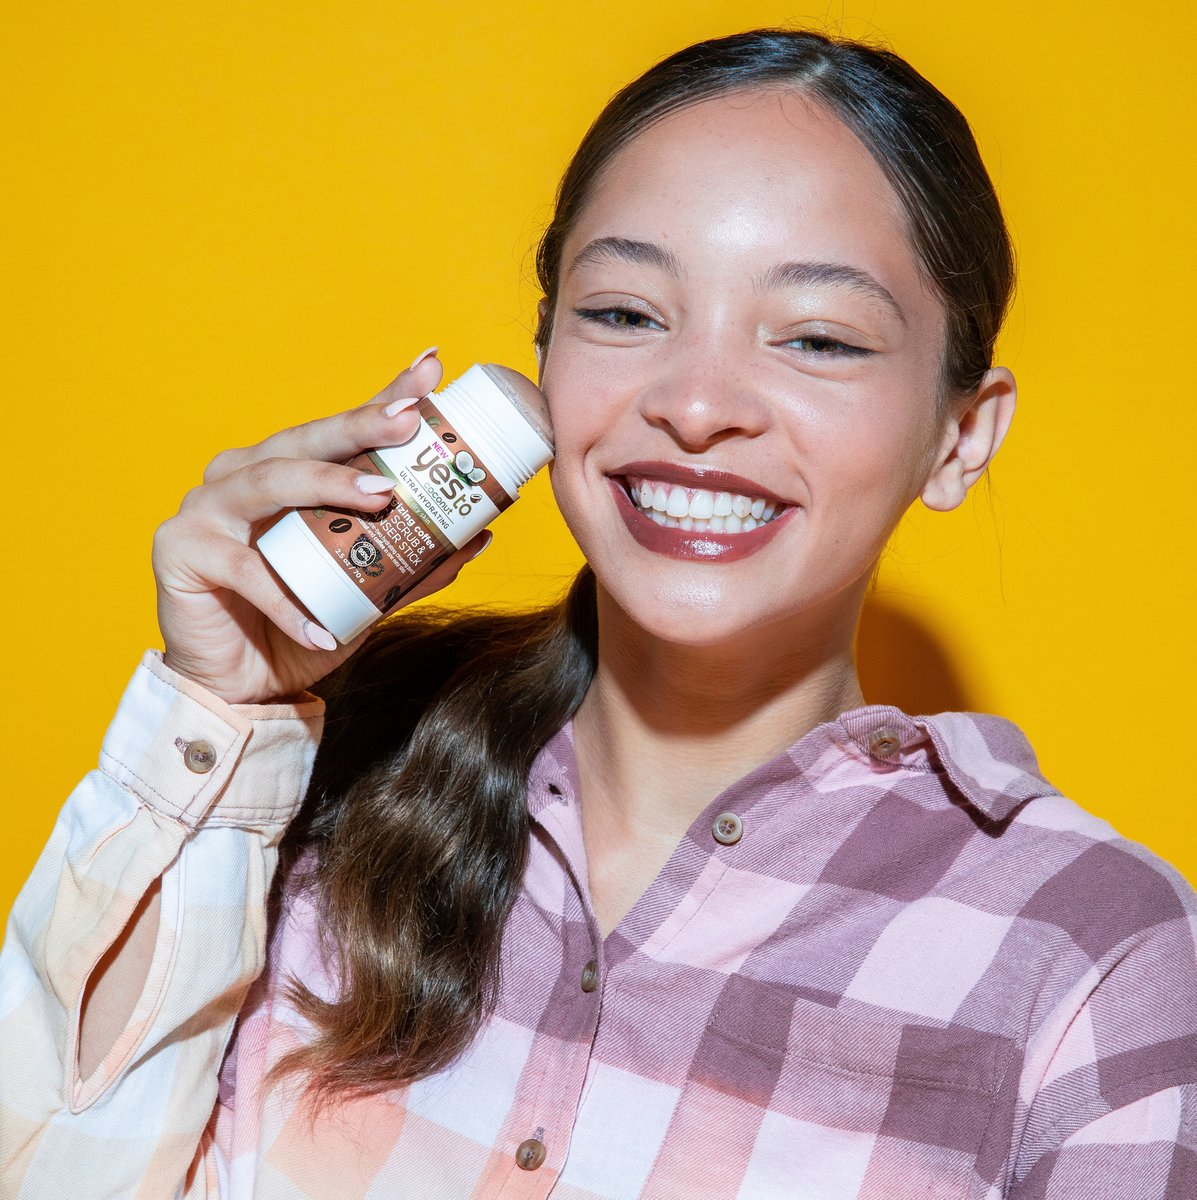 Hey Girl! Rockin' that winter makeup look? We dig it! Just remember to keep your skin clean and hydrated with the Yes To Coconut Energizing Coffee Cleanser Stick!     Find it now on @Amazon: https://amzn.to/2SjEetW  #coconutskincare #wintermakeup #winterskin #amazonbeautypic.twitter.com/nuwB5fqicj